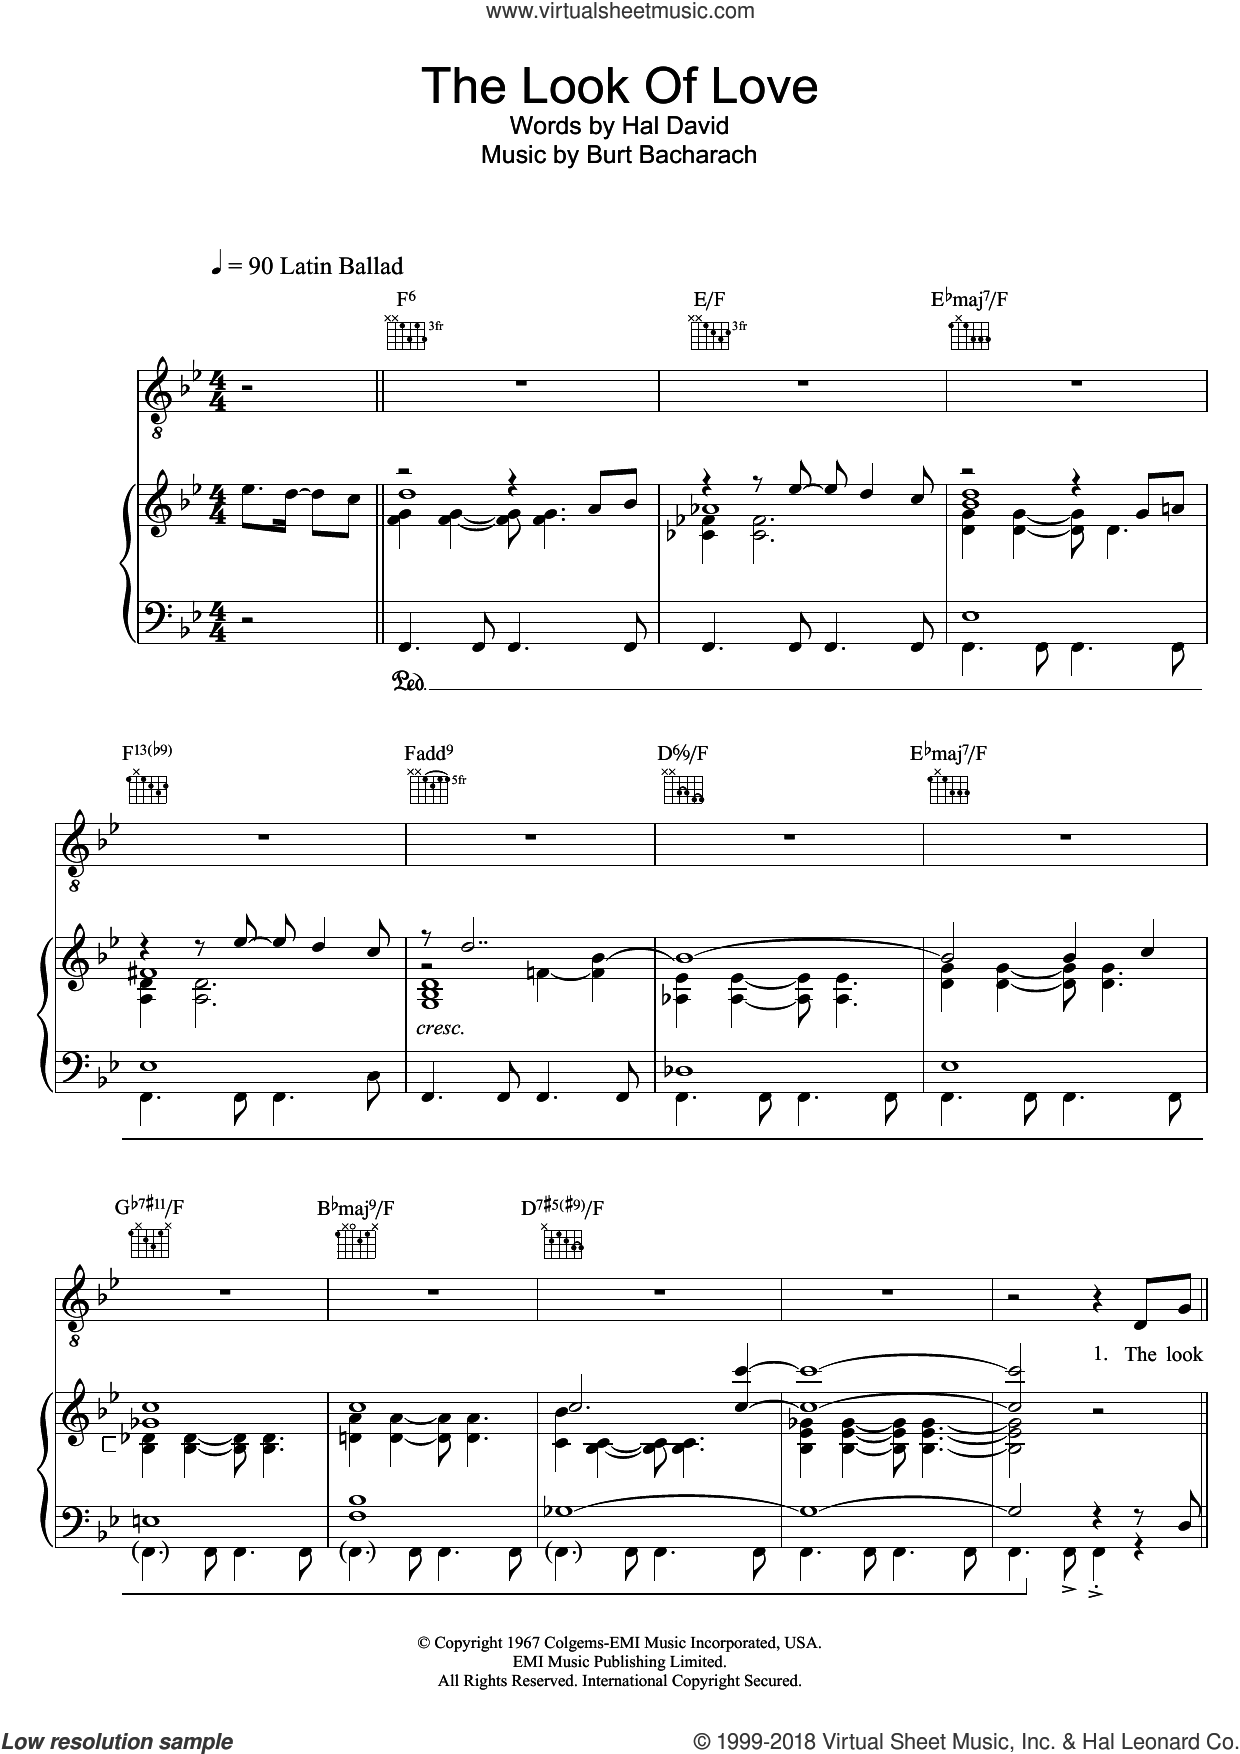 The Look Of Love sheet music for voice, piano or guitar by Bacharach & David, Andy Williams, Diana Krall, Burt Bacharach, Dusty Springfield and Hal David, intermediate skill level